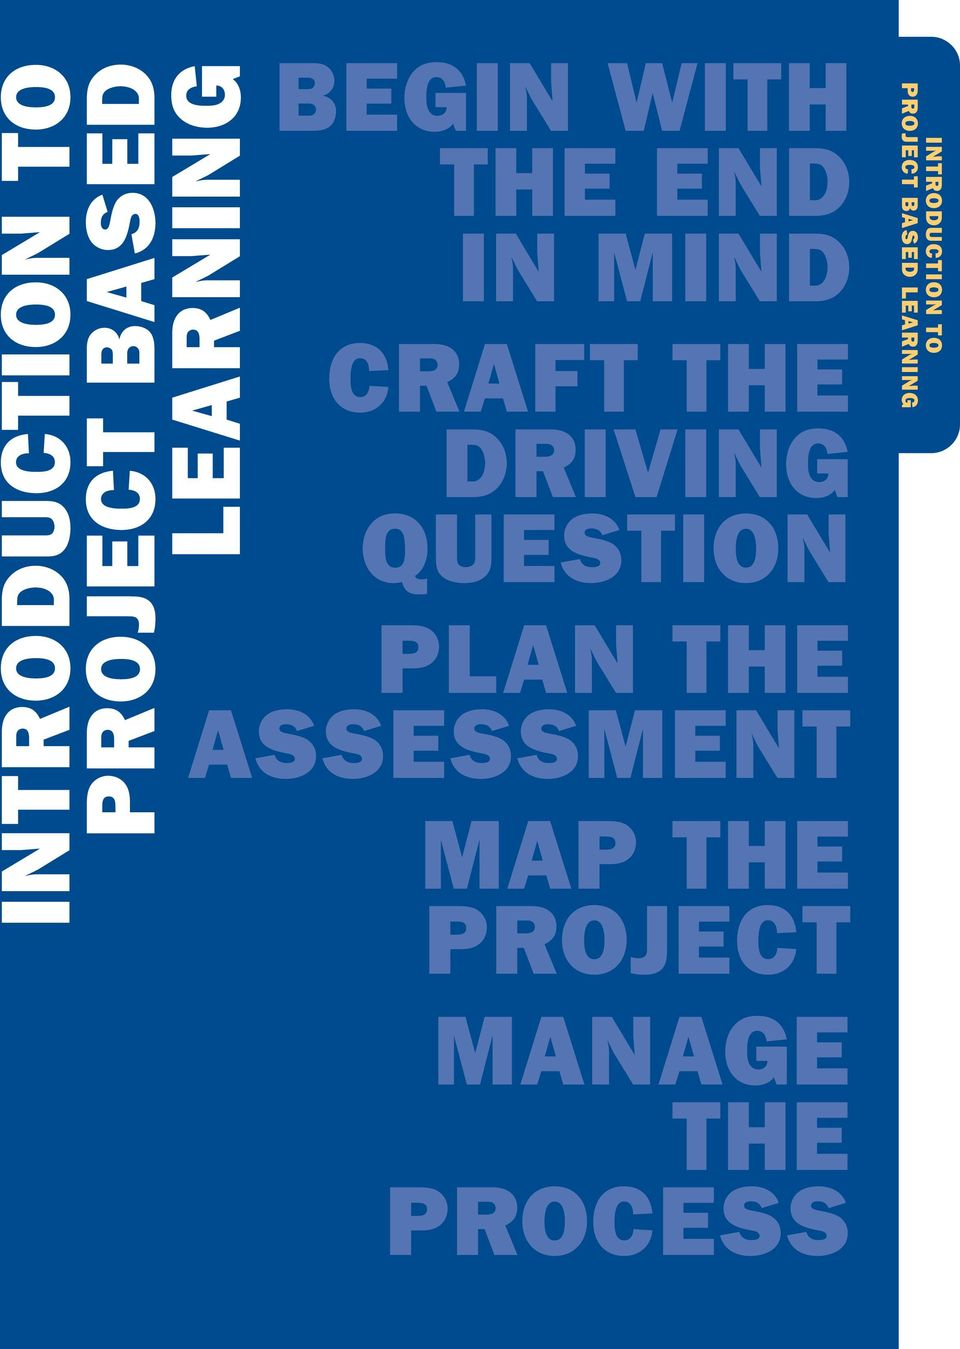 QUESTION PLAN THE ASSESSMENT MAP THE PROJECT